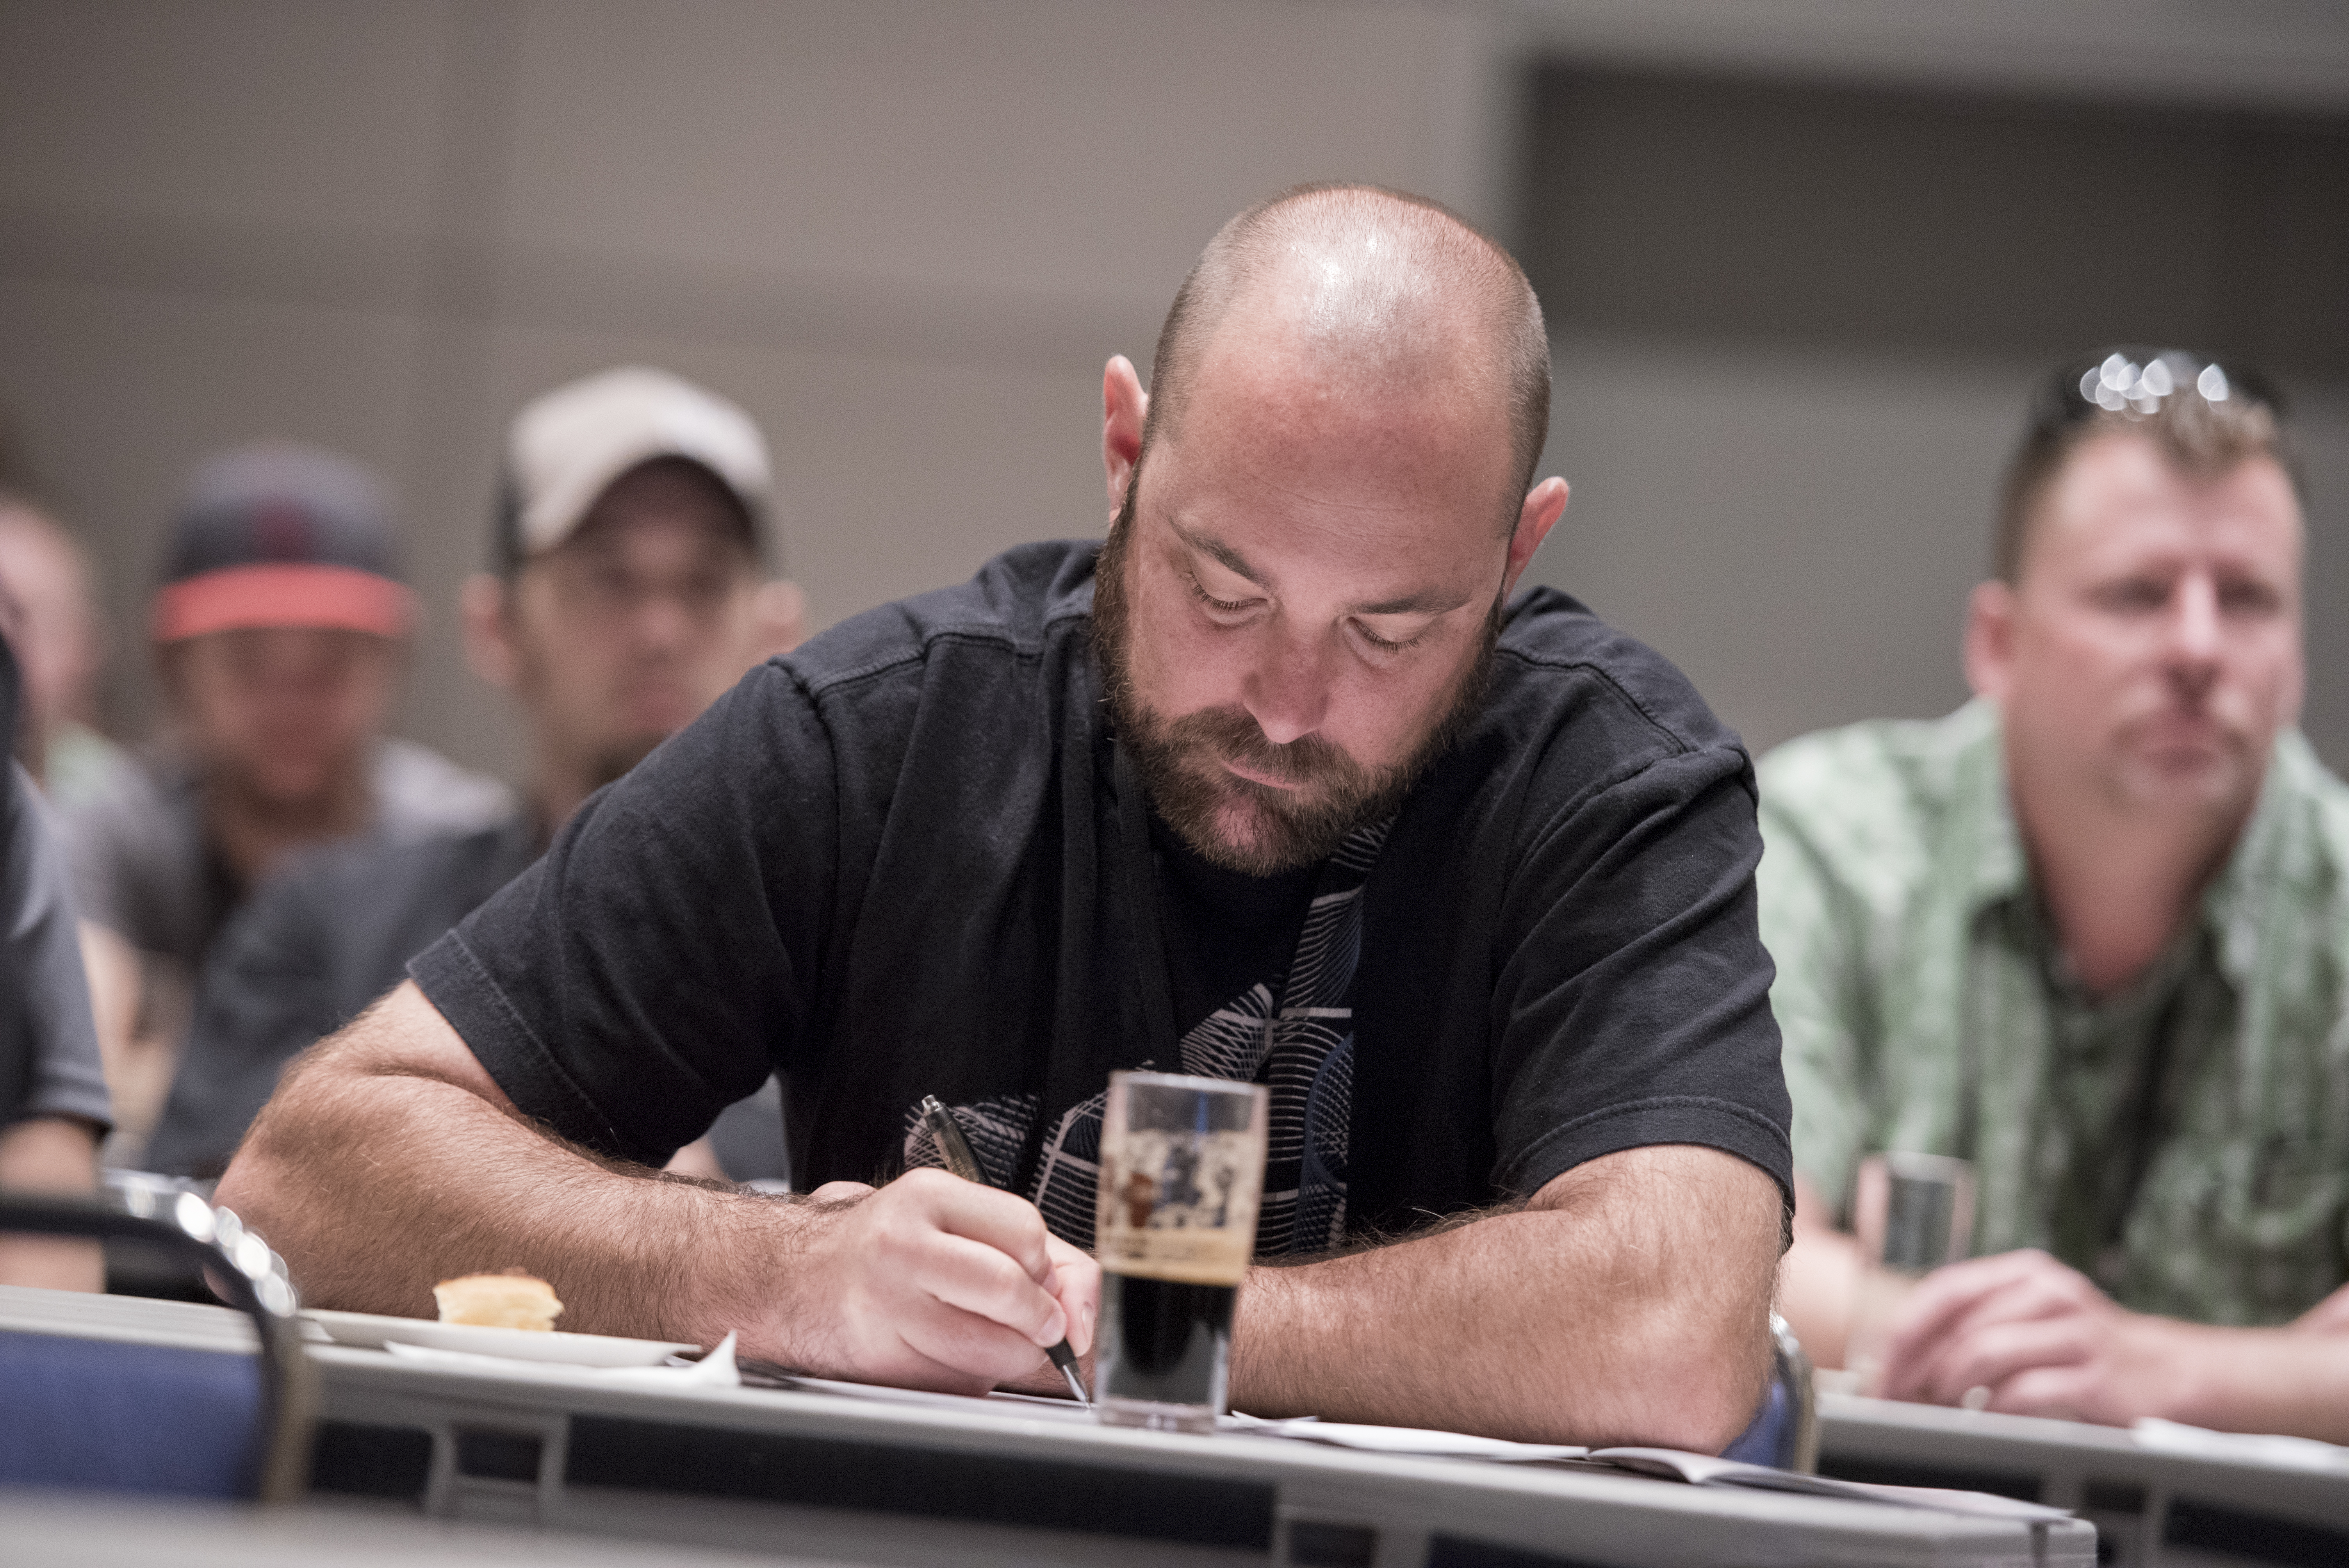 California Craft Beer Summit attendee taking notes